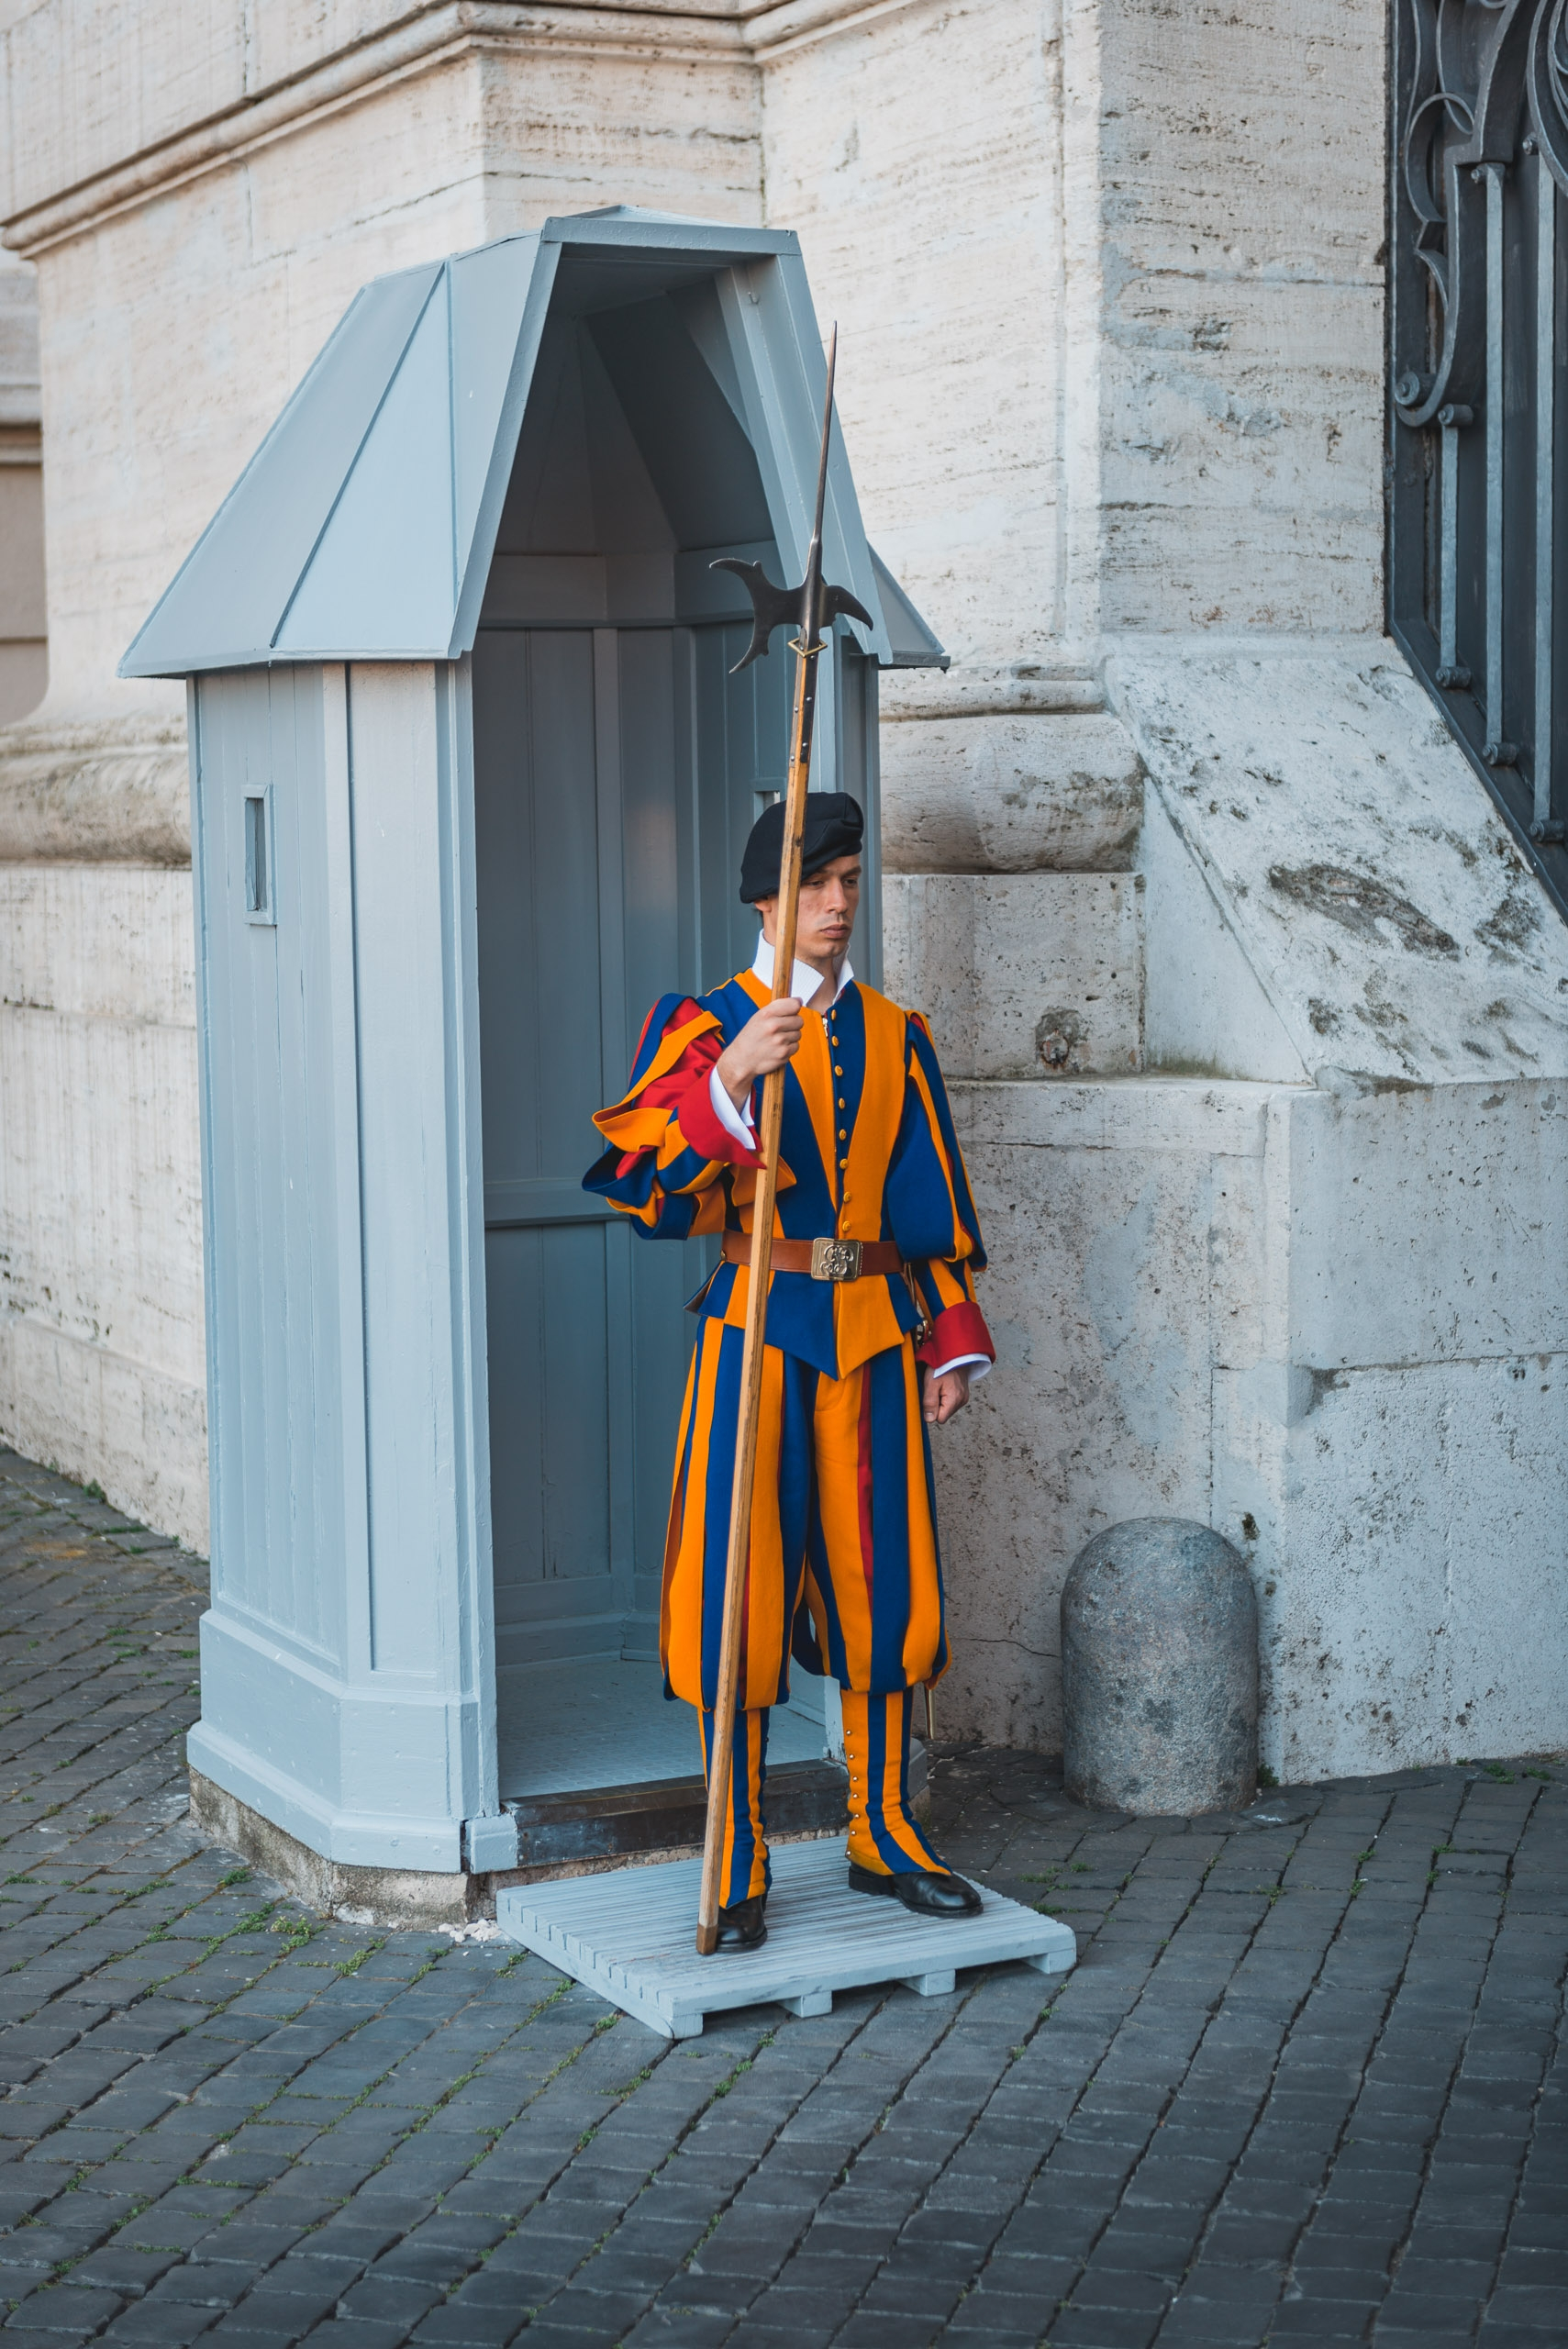 The Swiss Guard Outside St Peters Basilica 2